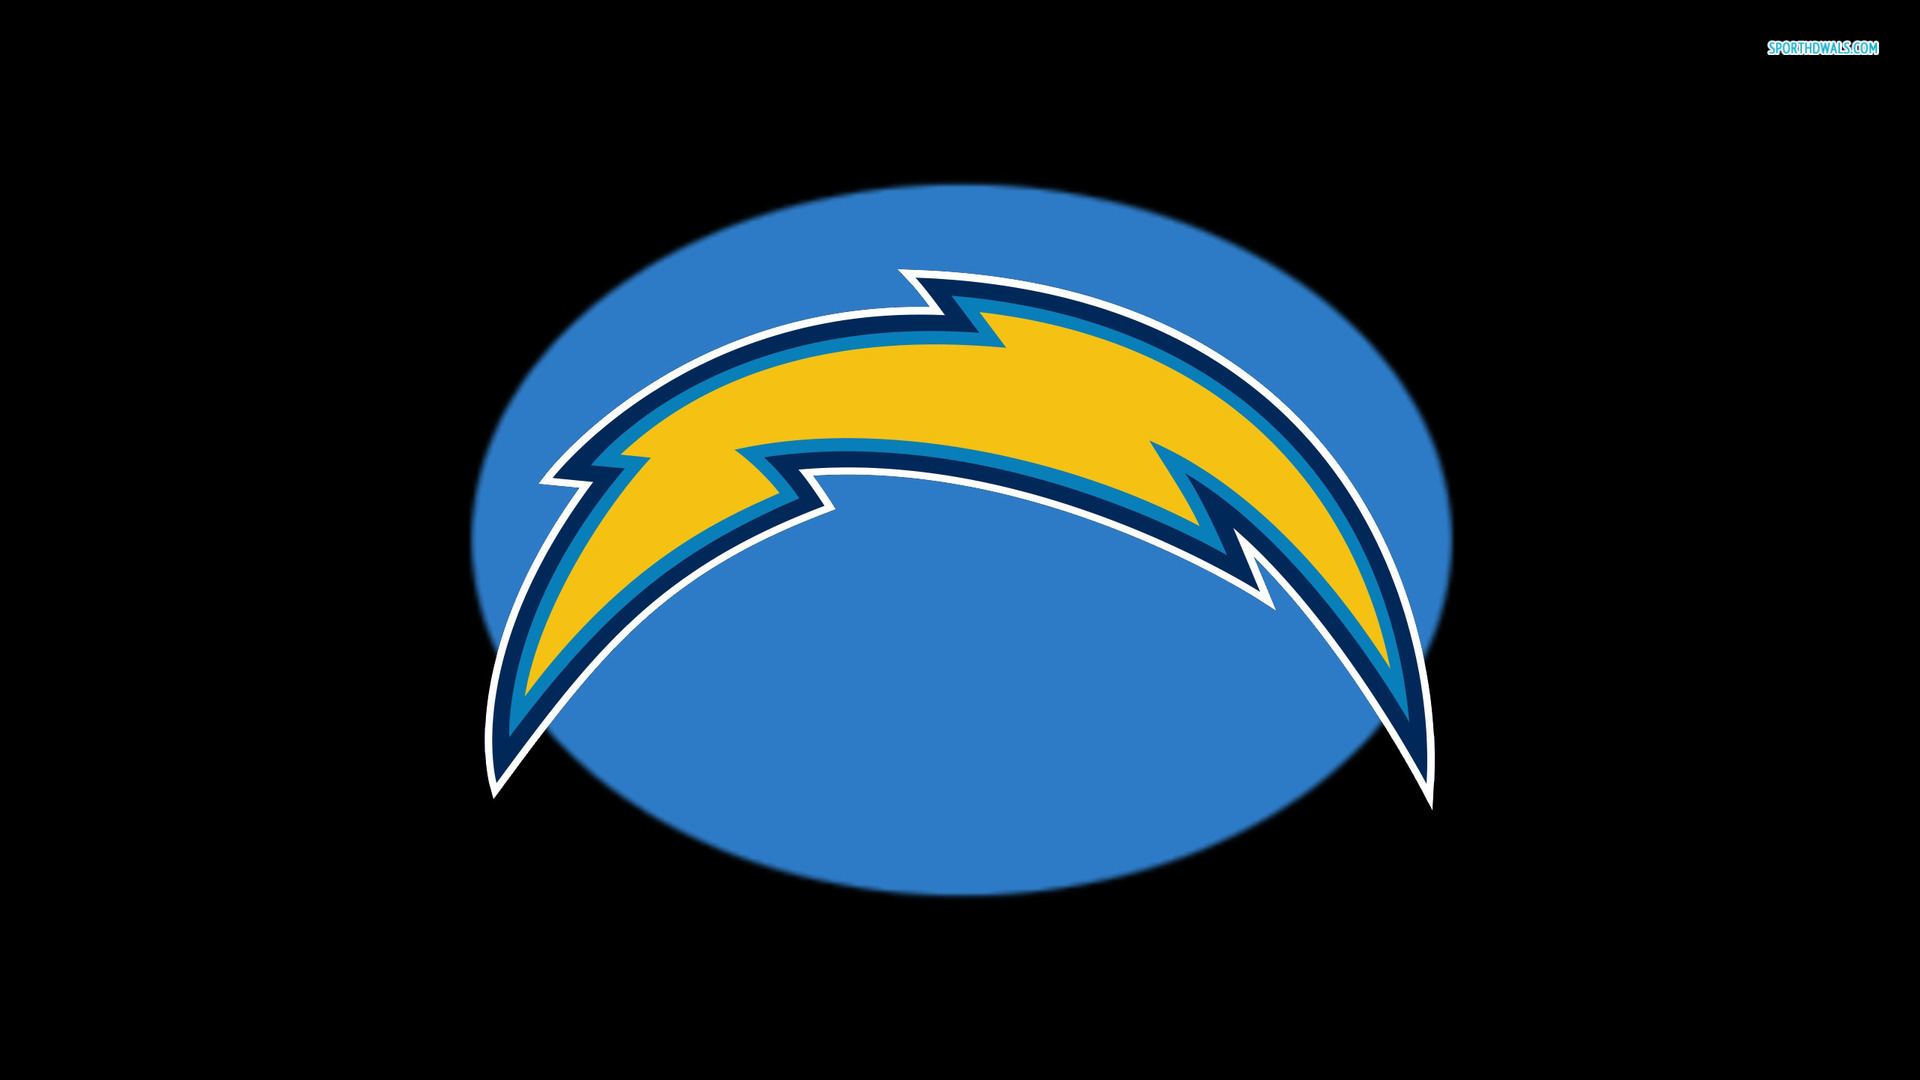 Free Download San Diego Chargers Nfl Football Bw Wallpaper